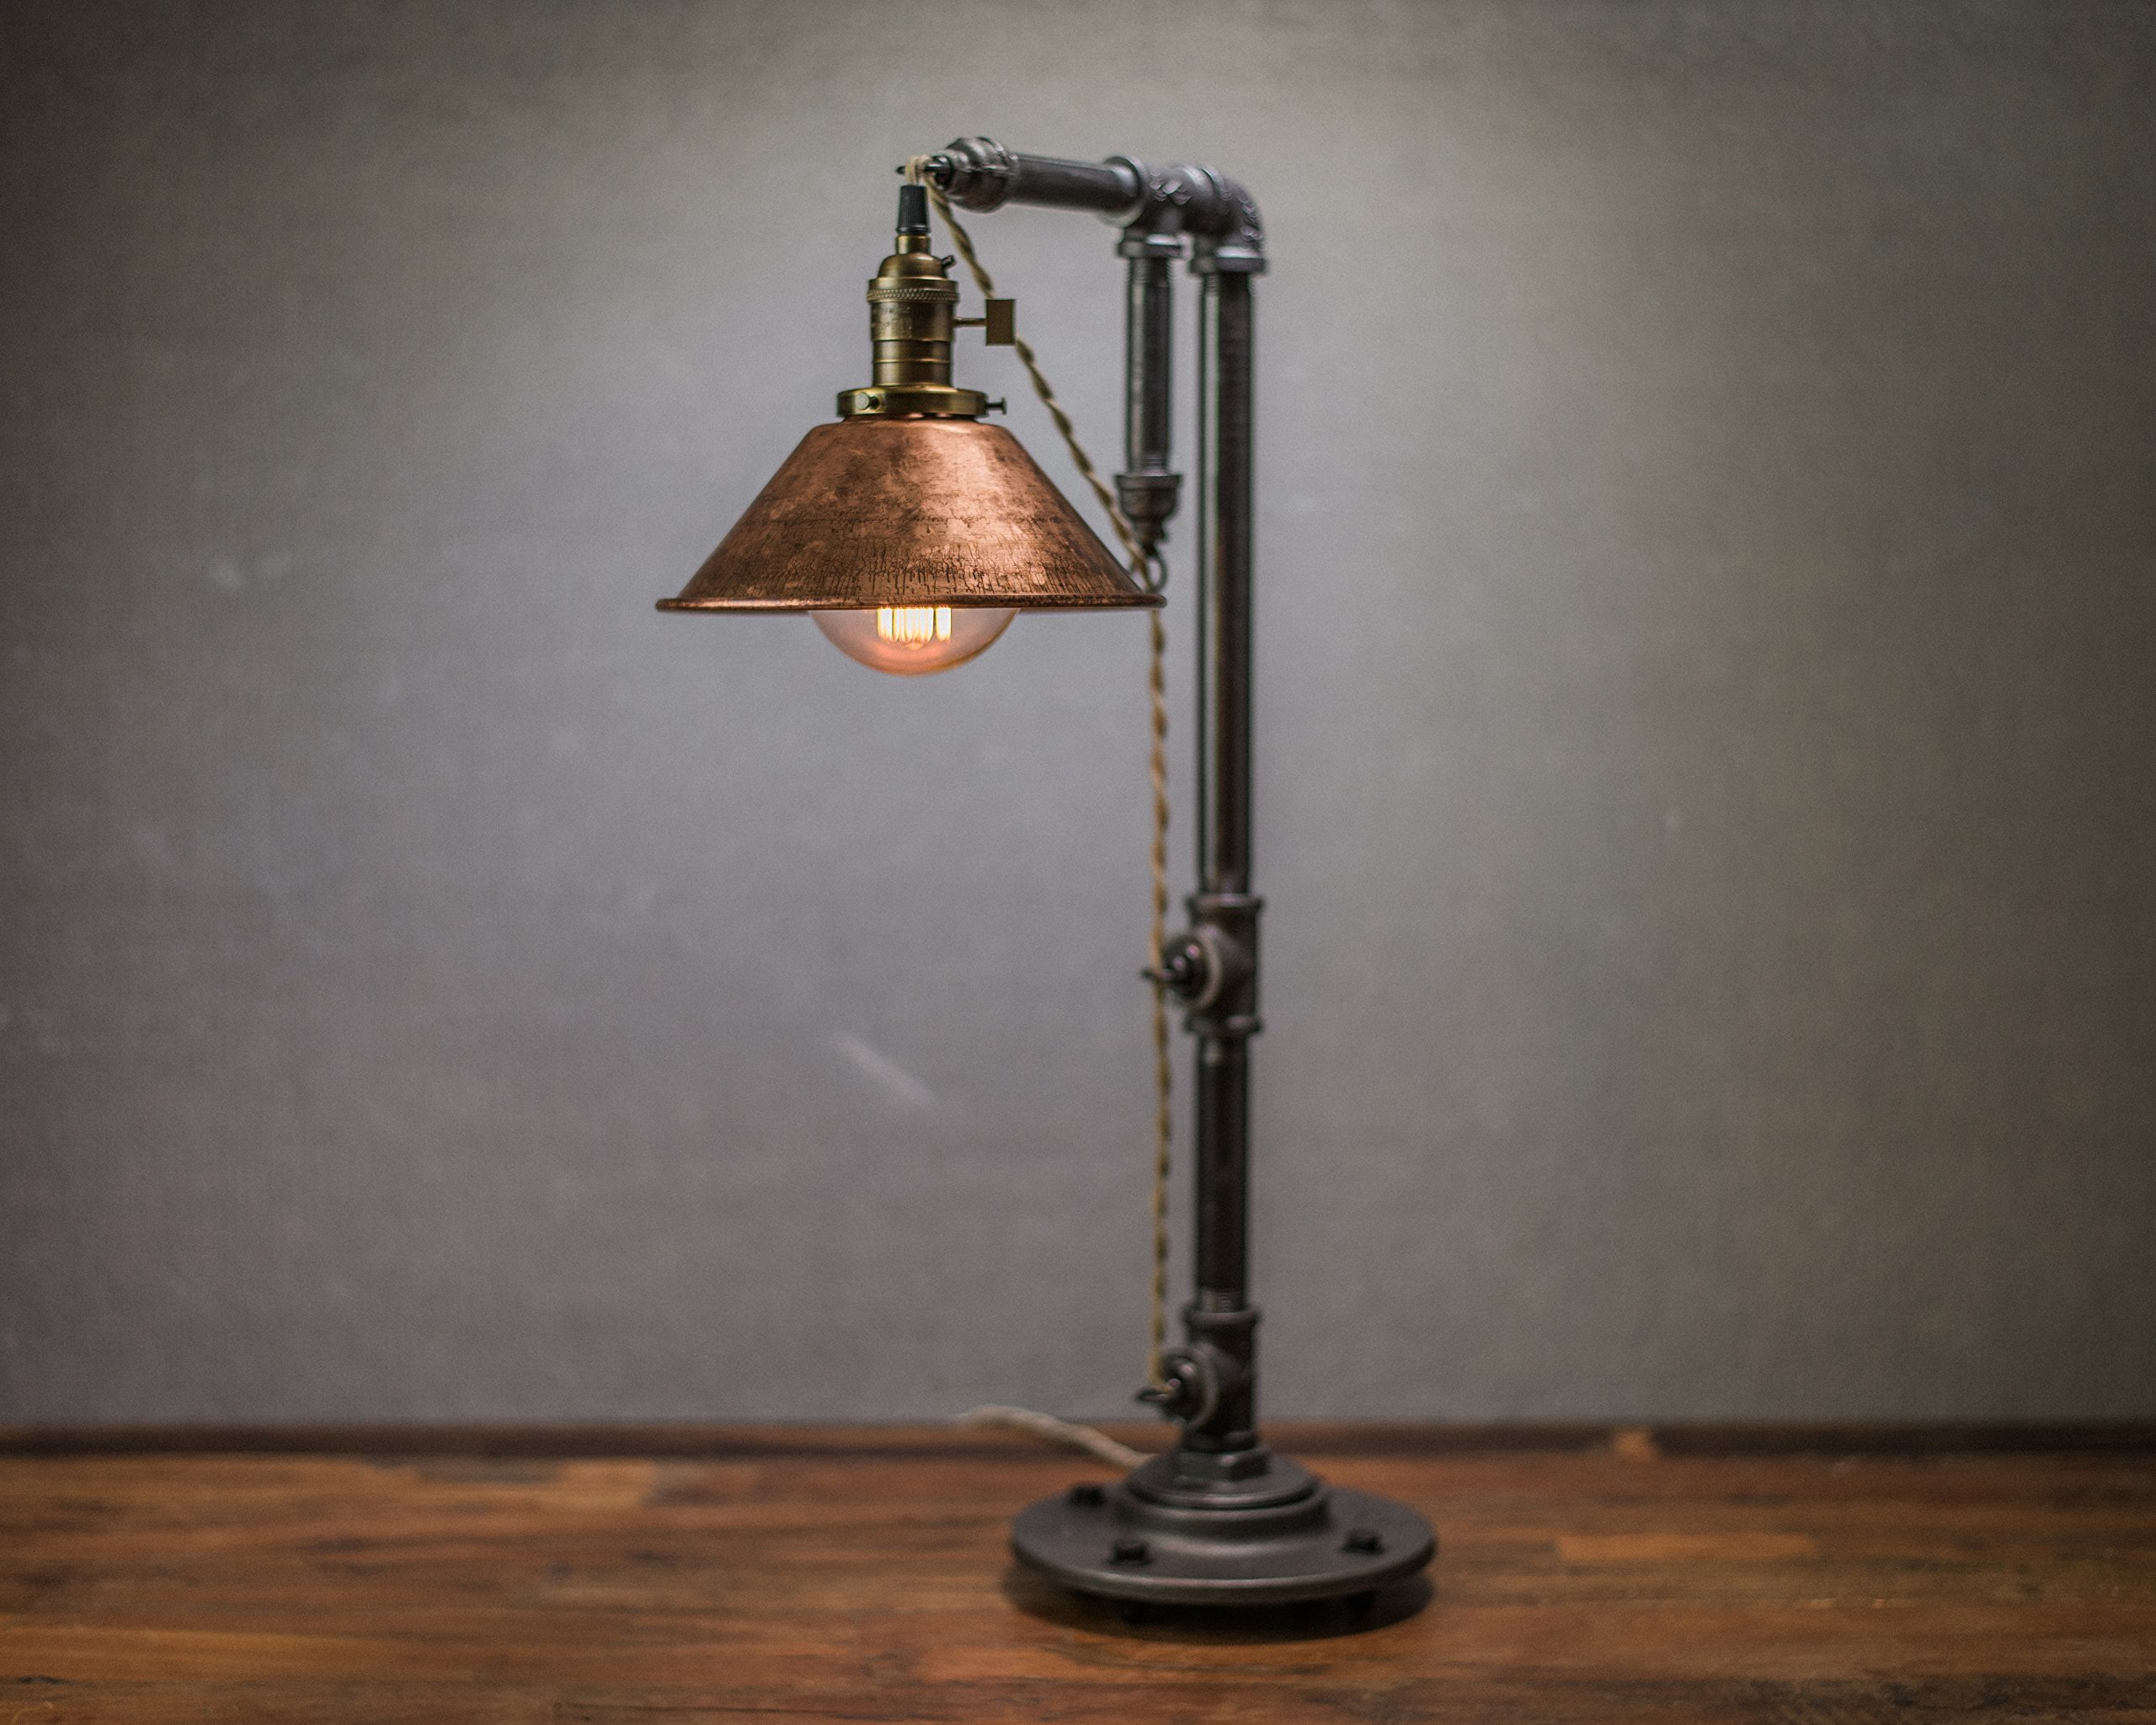 Industrial Looking Light Bulbs Industrial Style Table Lamp Pendant Edison Bulb Copper